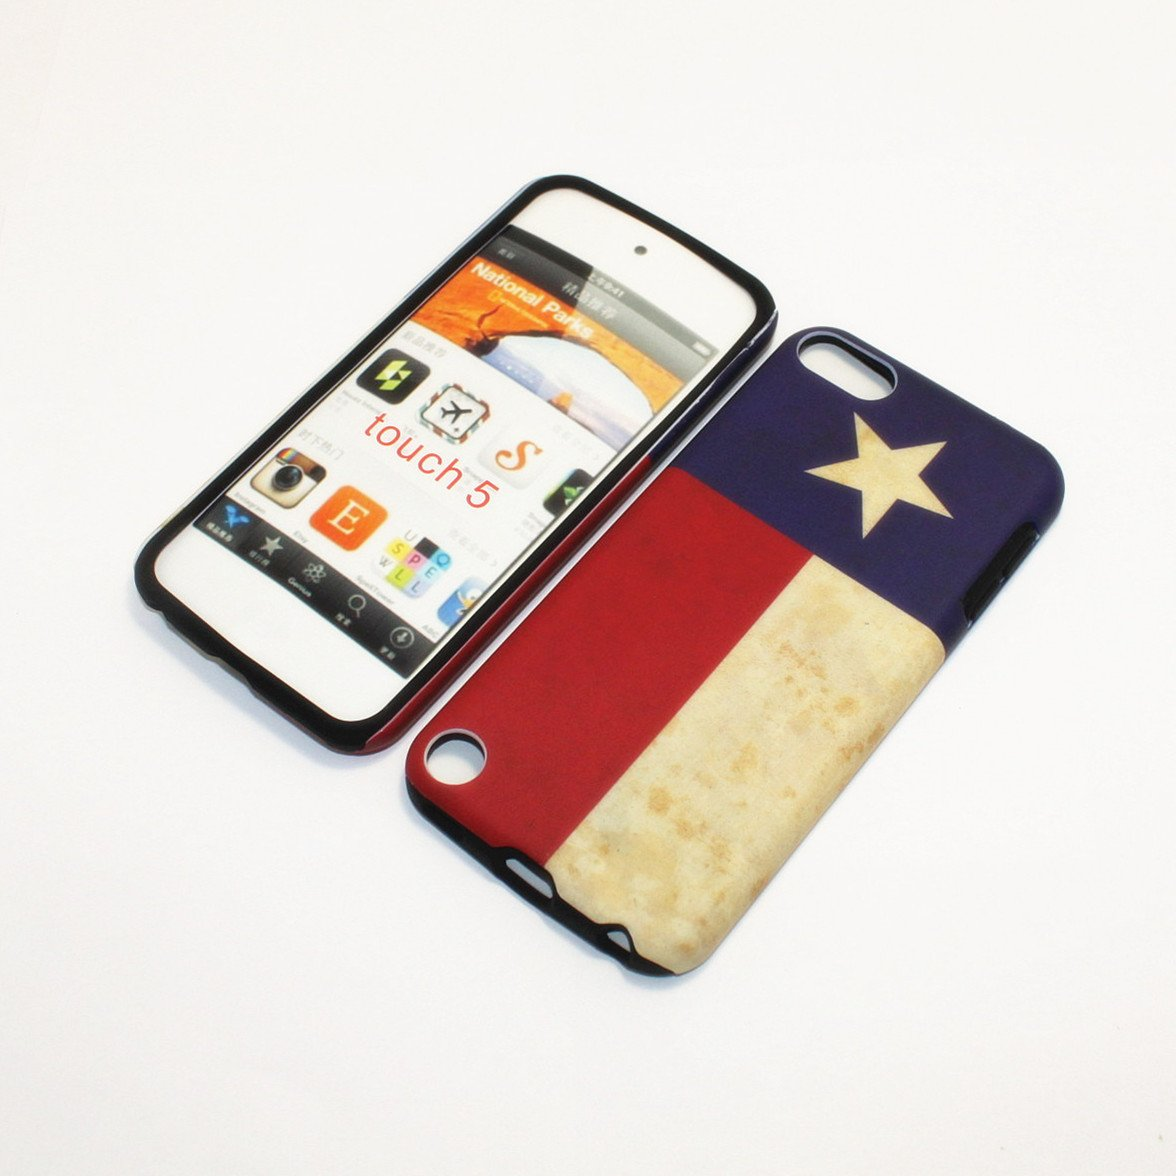 APPLE IPOD TOUCH 5 TEXAS FLAG HYBRID TWO IN ONE CASE SOFT RUBBER INSIDE AND HARD RUBBERIZED PLASTIC OUTER COVER rubberized hard shell case w ribbed design holster